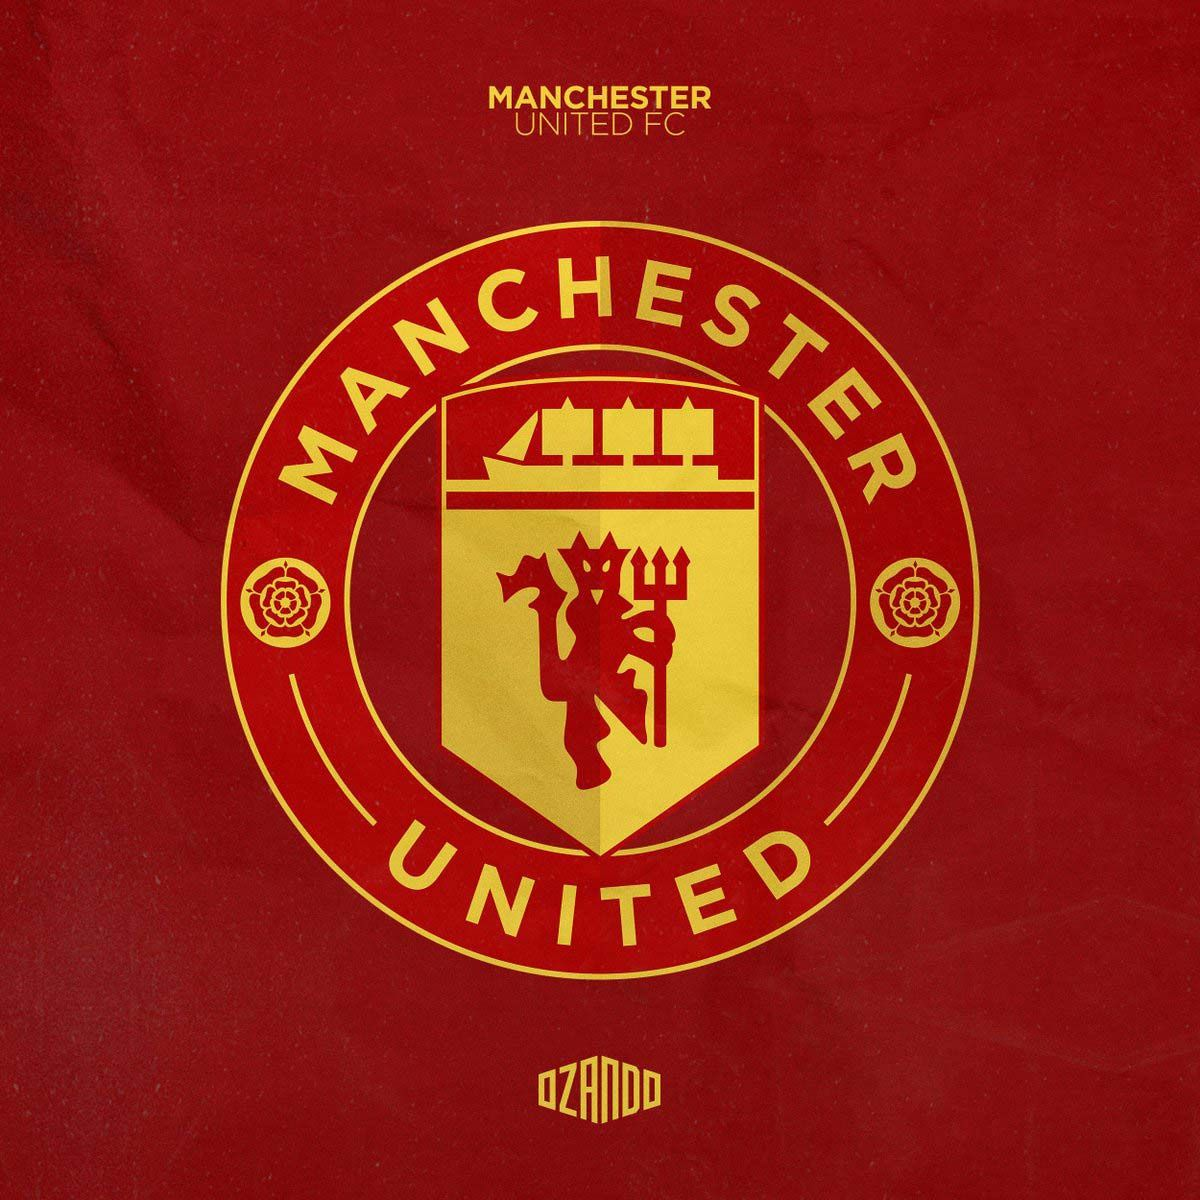 Pin By Patrick Wilding On Manchester United Manchester United Manchester United Logo Manchester